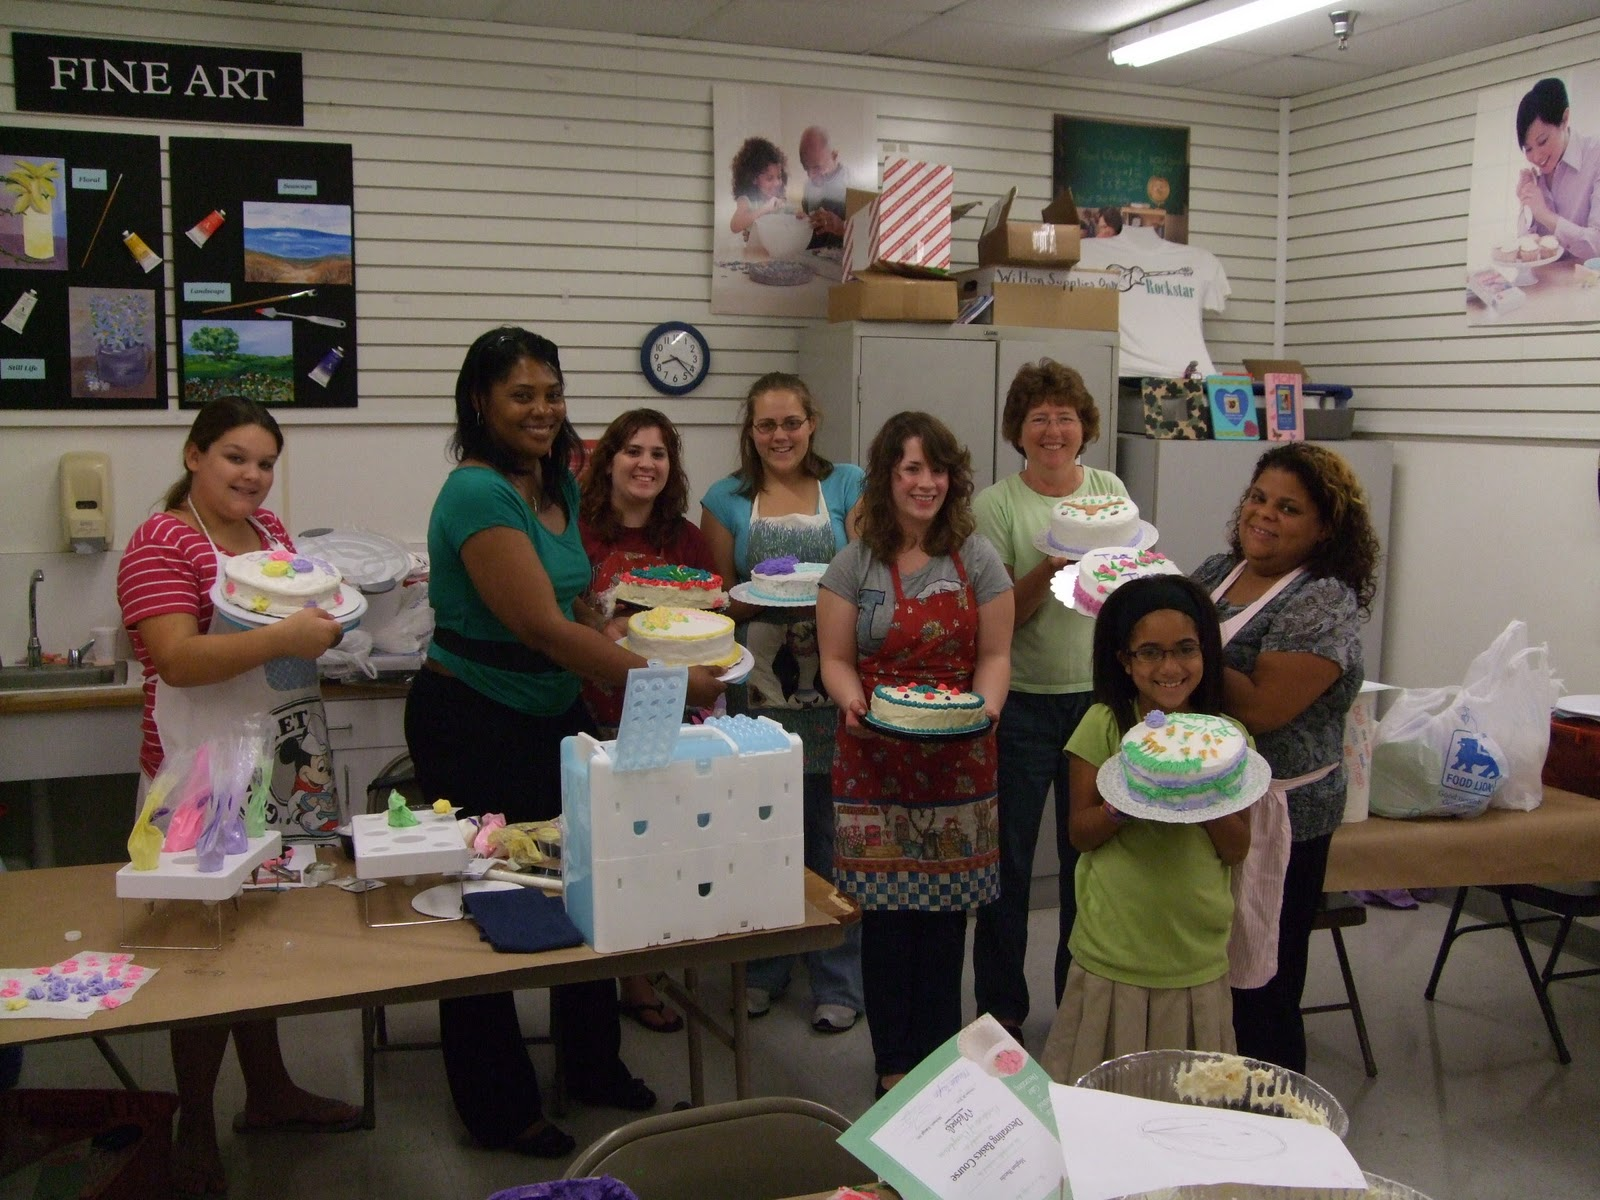 Michaels Cake Decorating Kit For Class : Cake Sophistication - The Blog: Welcome to Cake ...